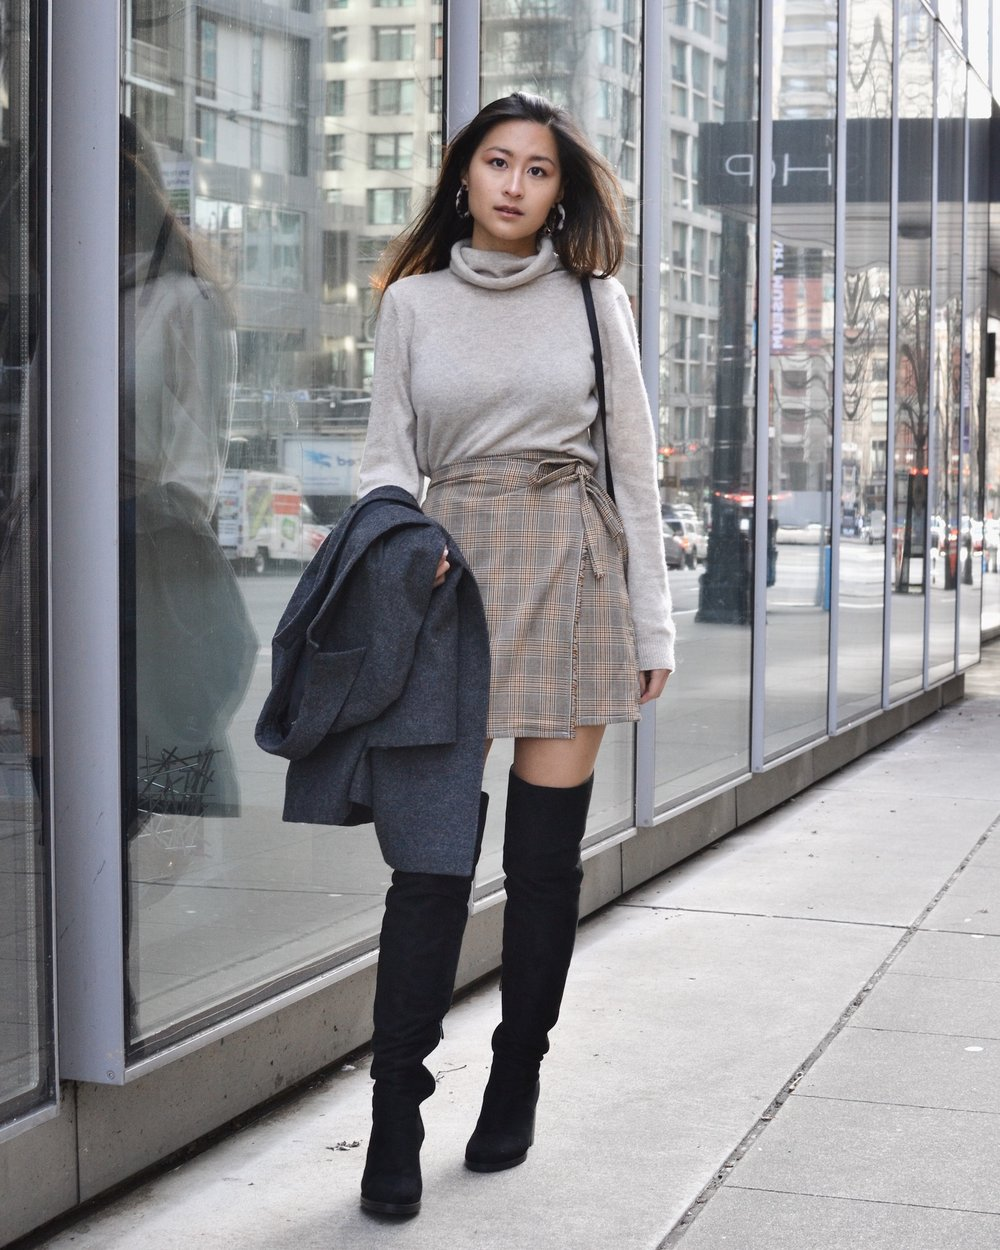 Ethical sweater for casual cool weather wear // A Week Of Empowered Outfits With Cat Chiang From Restitchstance on The Good Trade